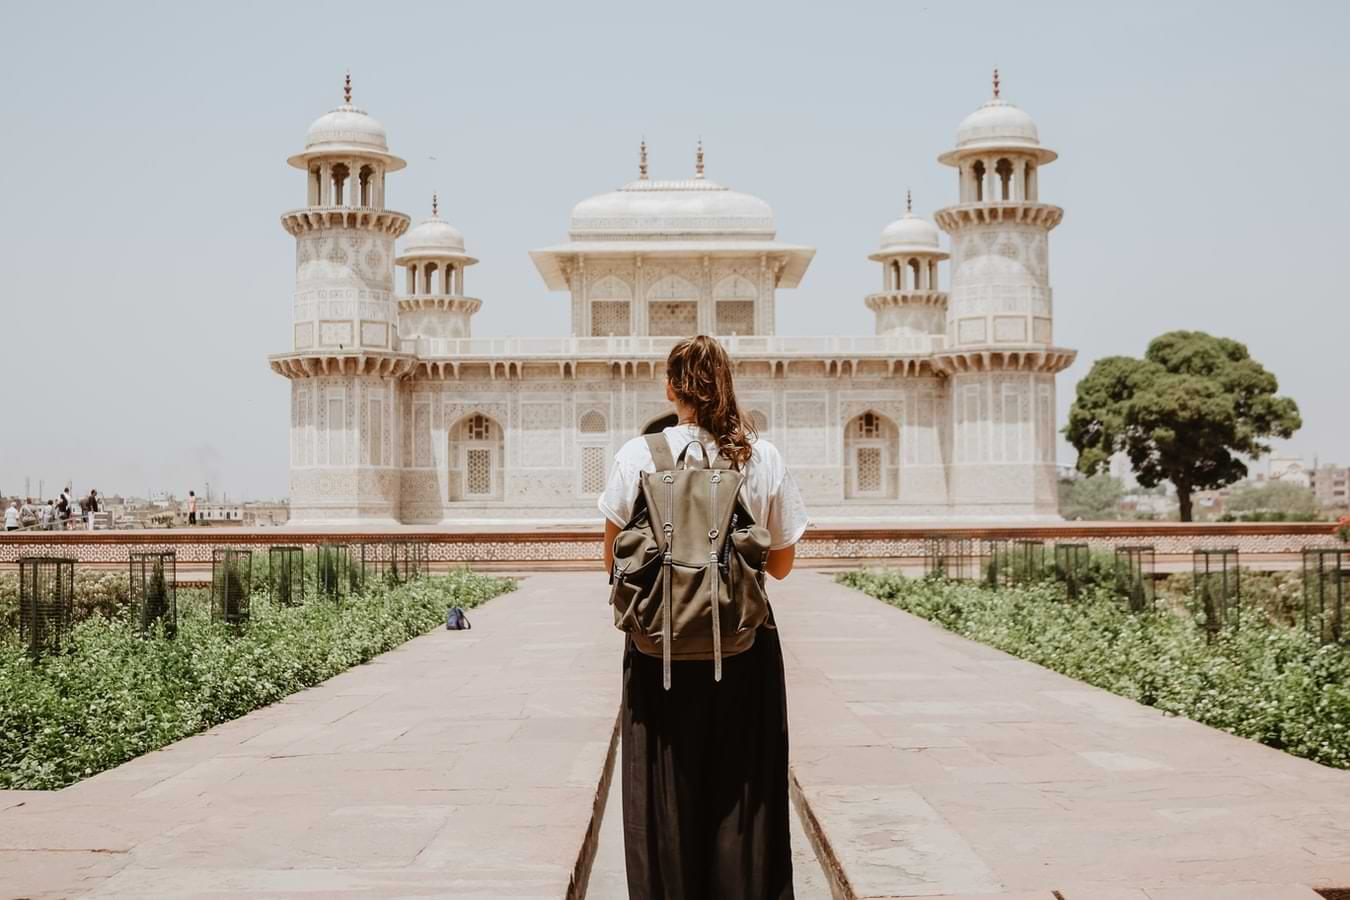 Top 4 Benefits Of Buying High-Quality Travel-Friendly Clothes Online